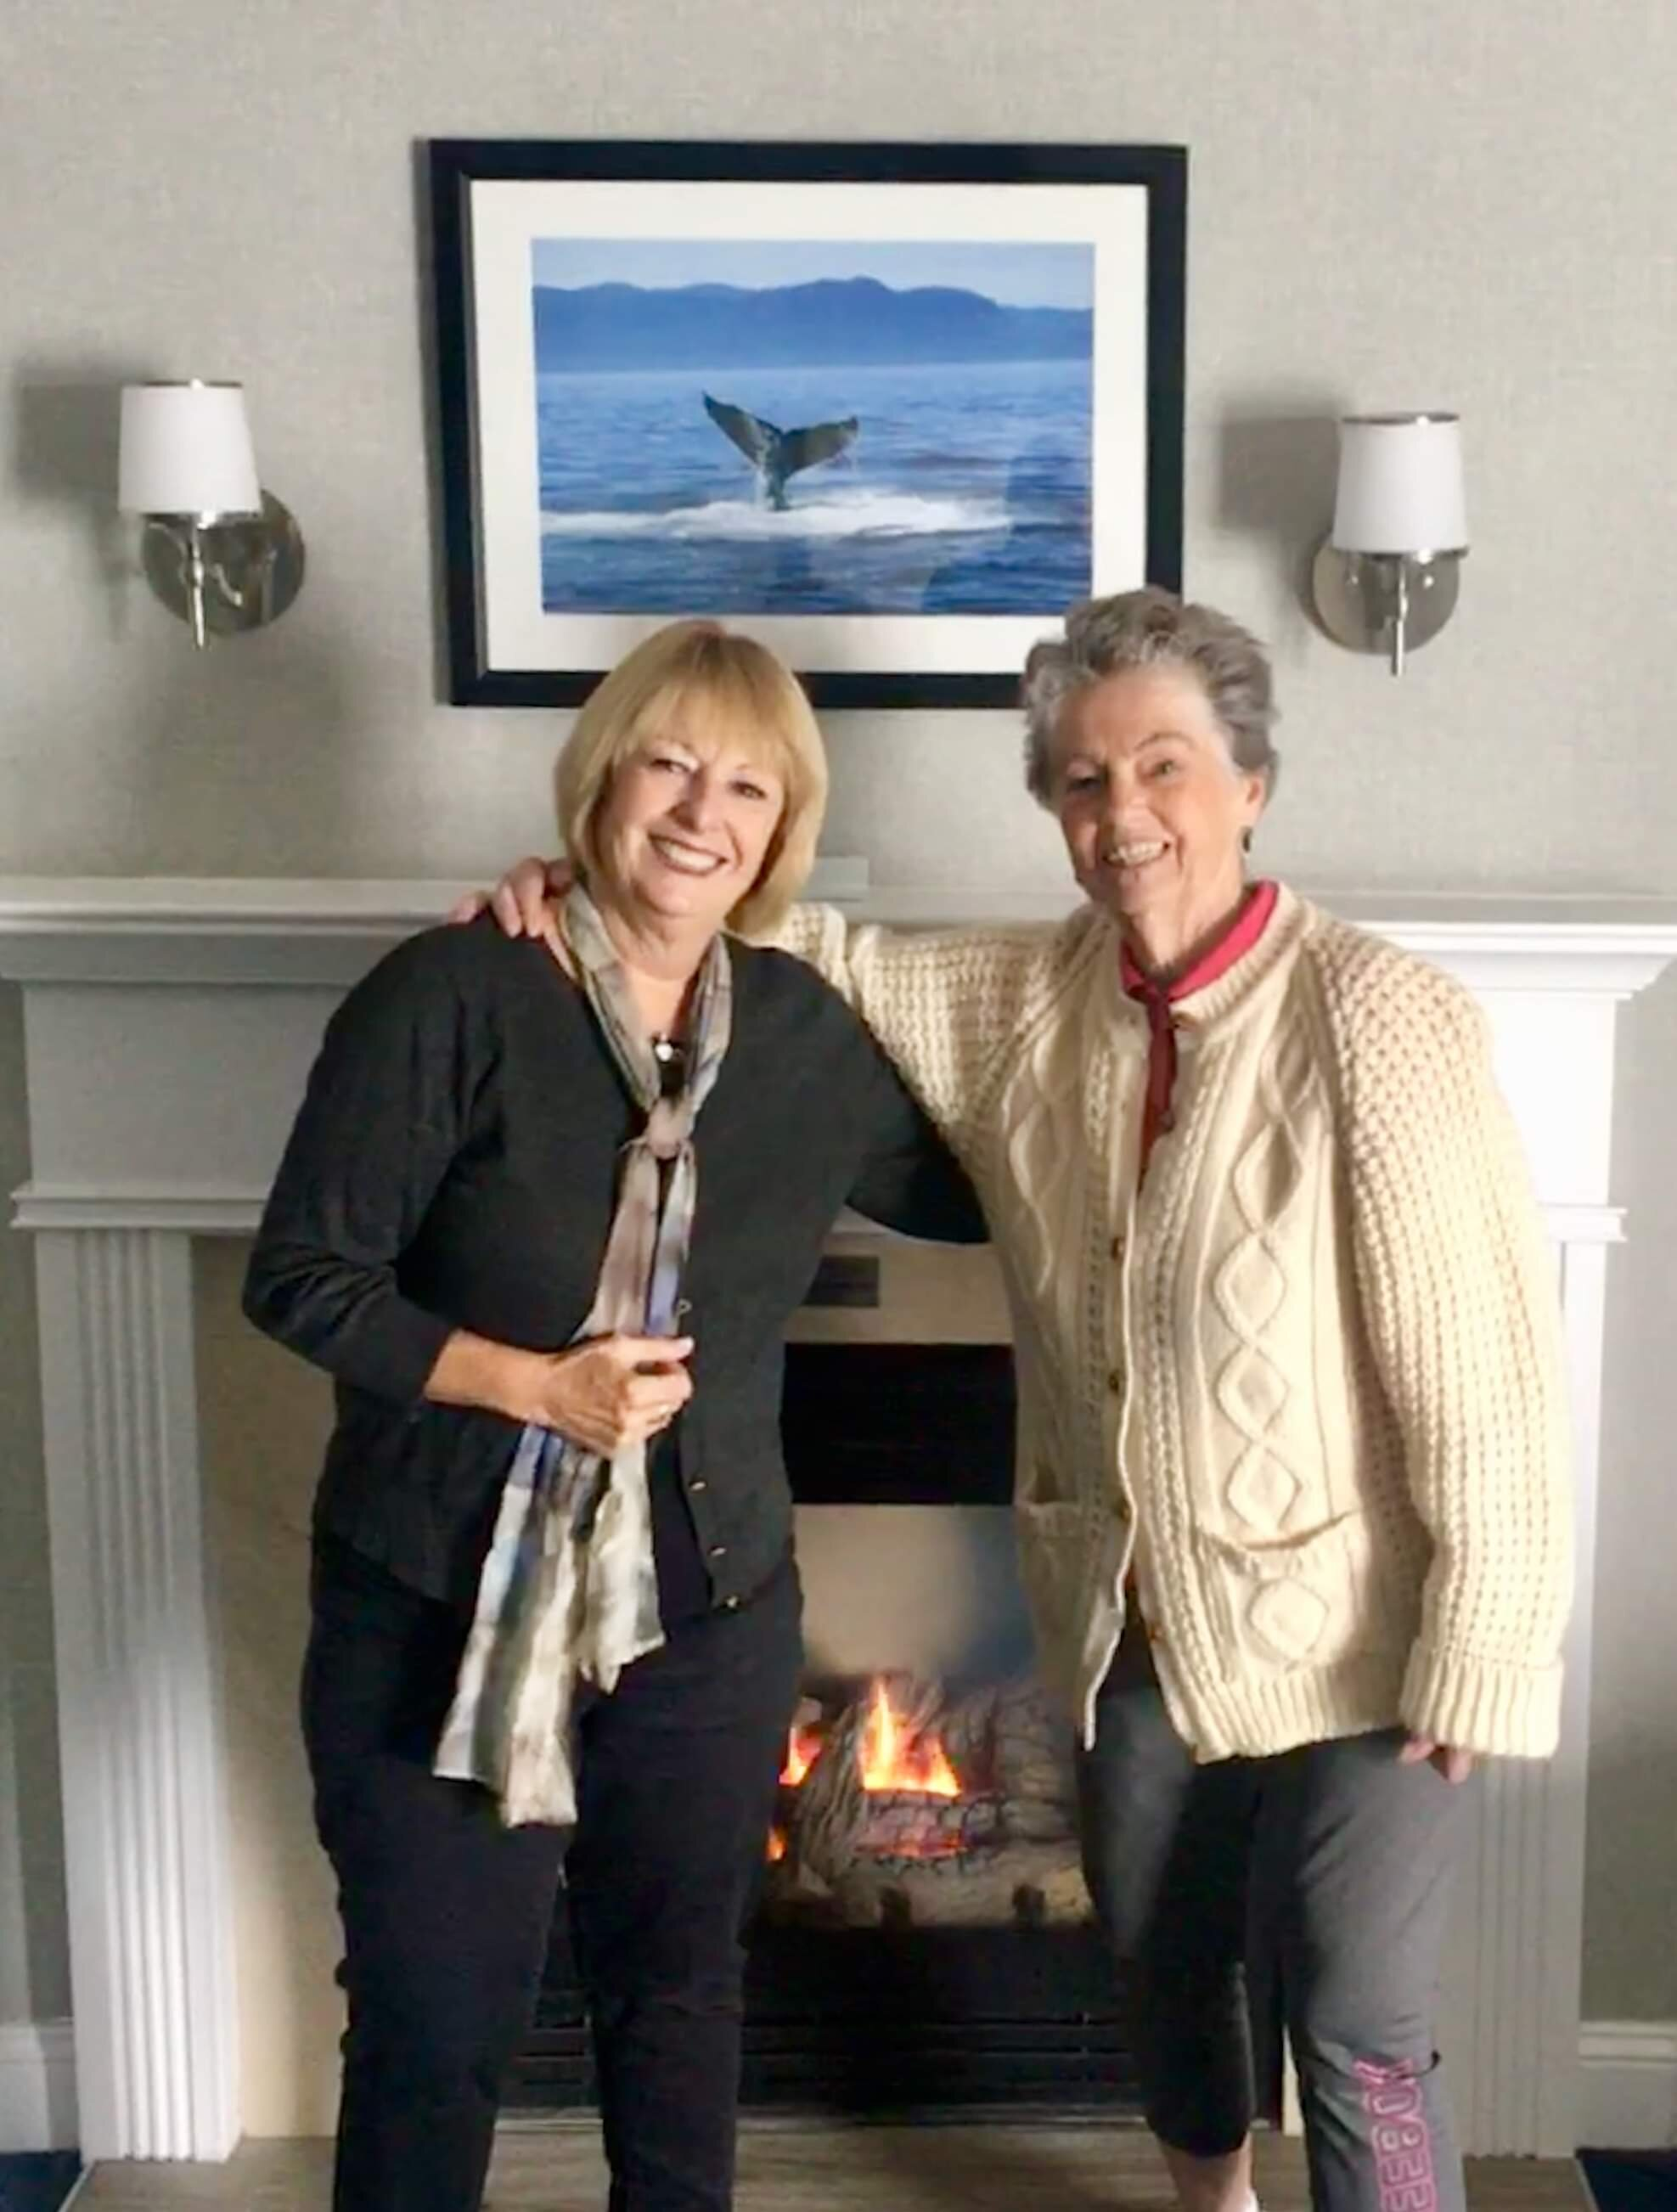 Carol with sister Joan and our inviting fireplace